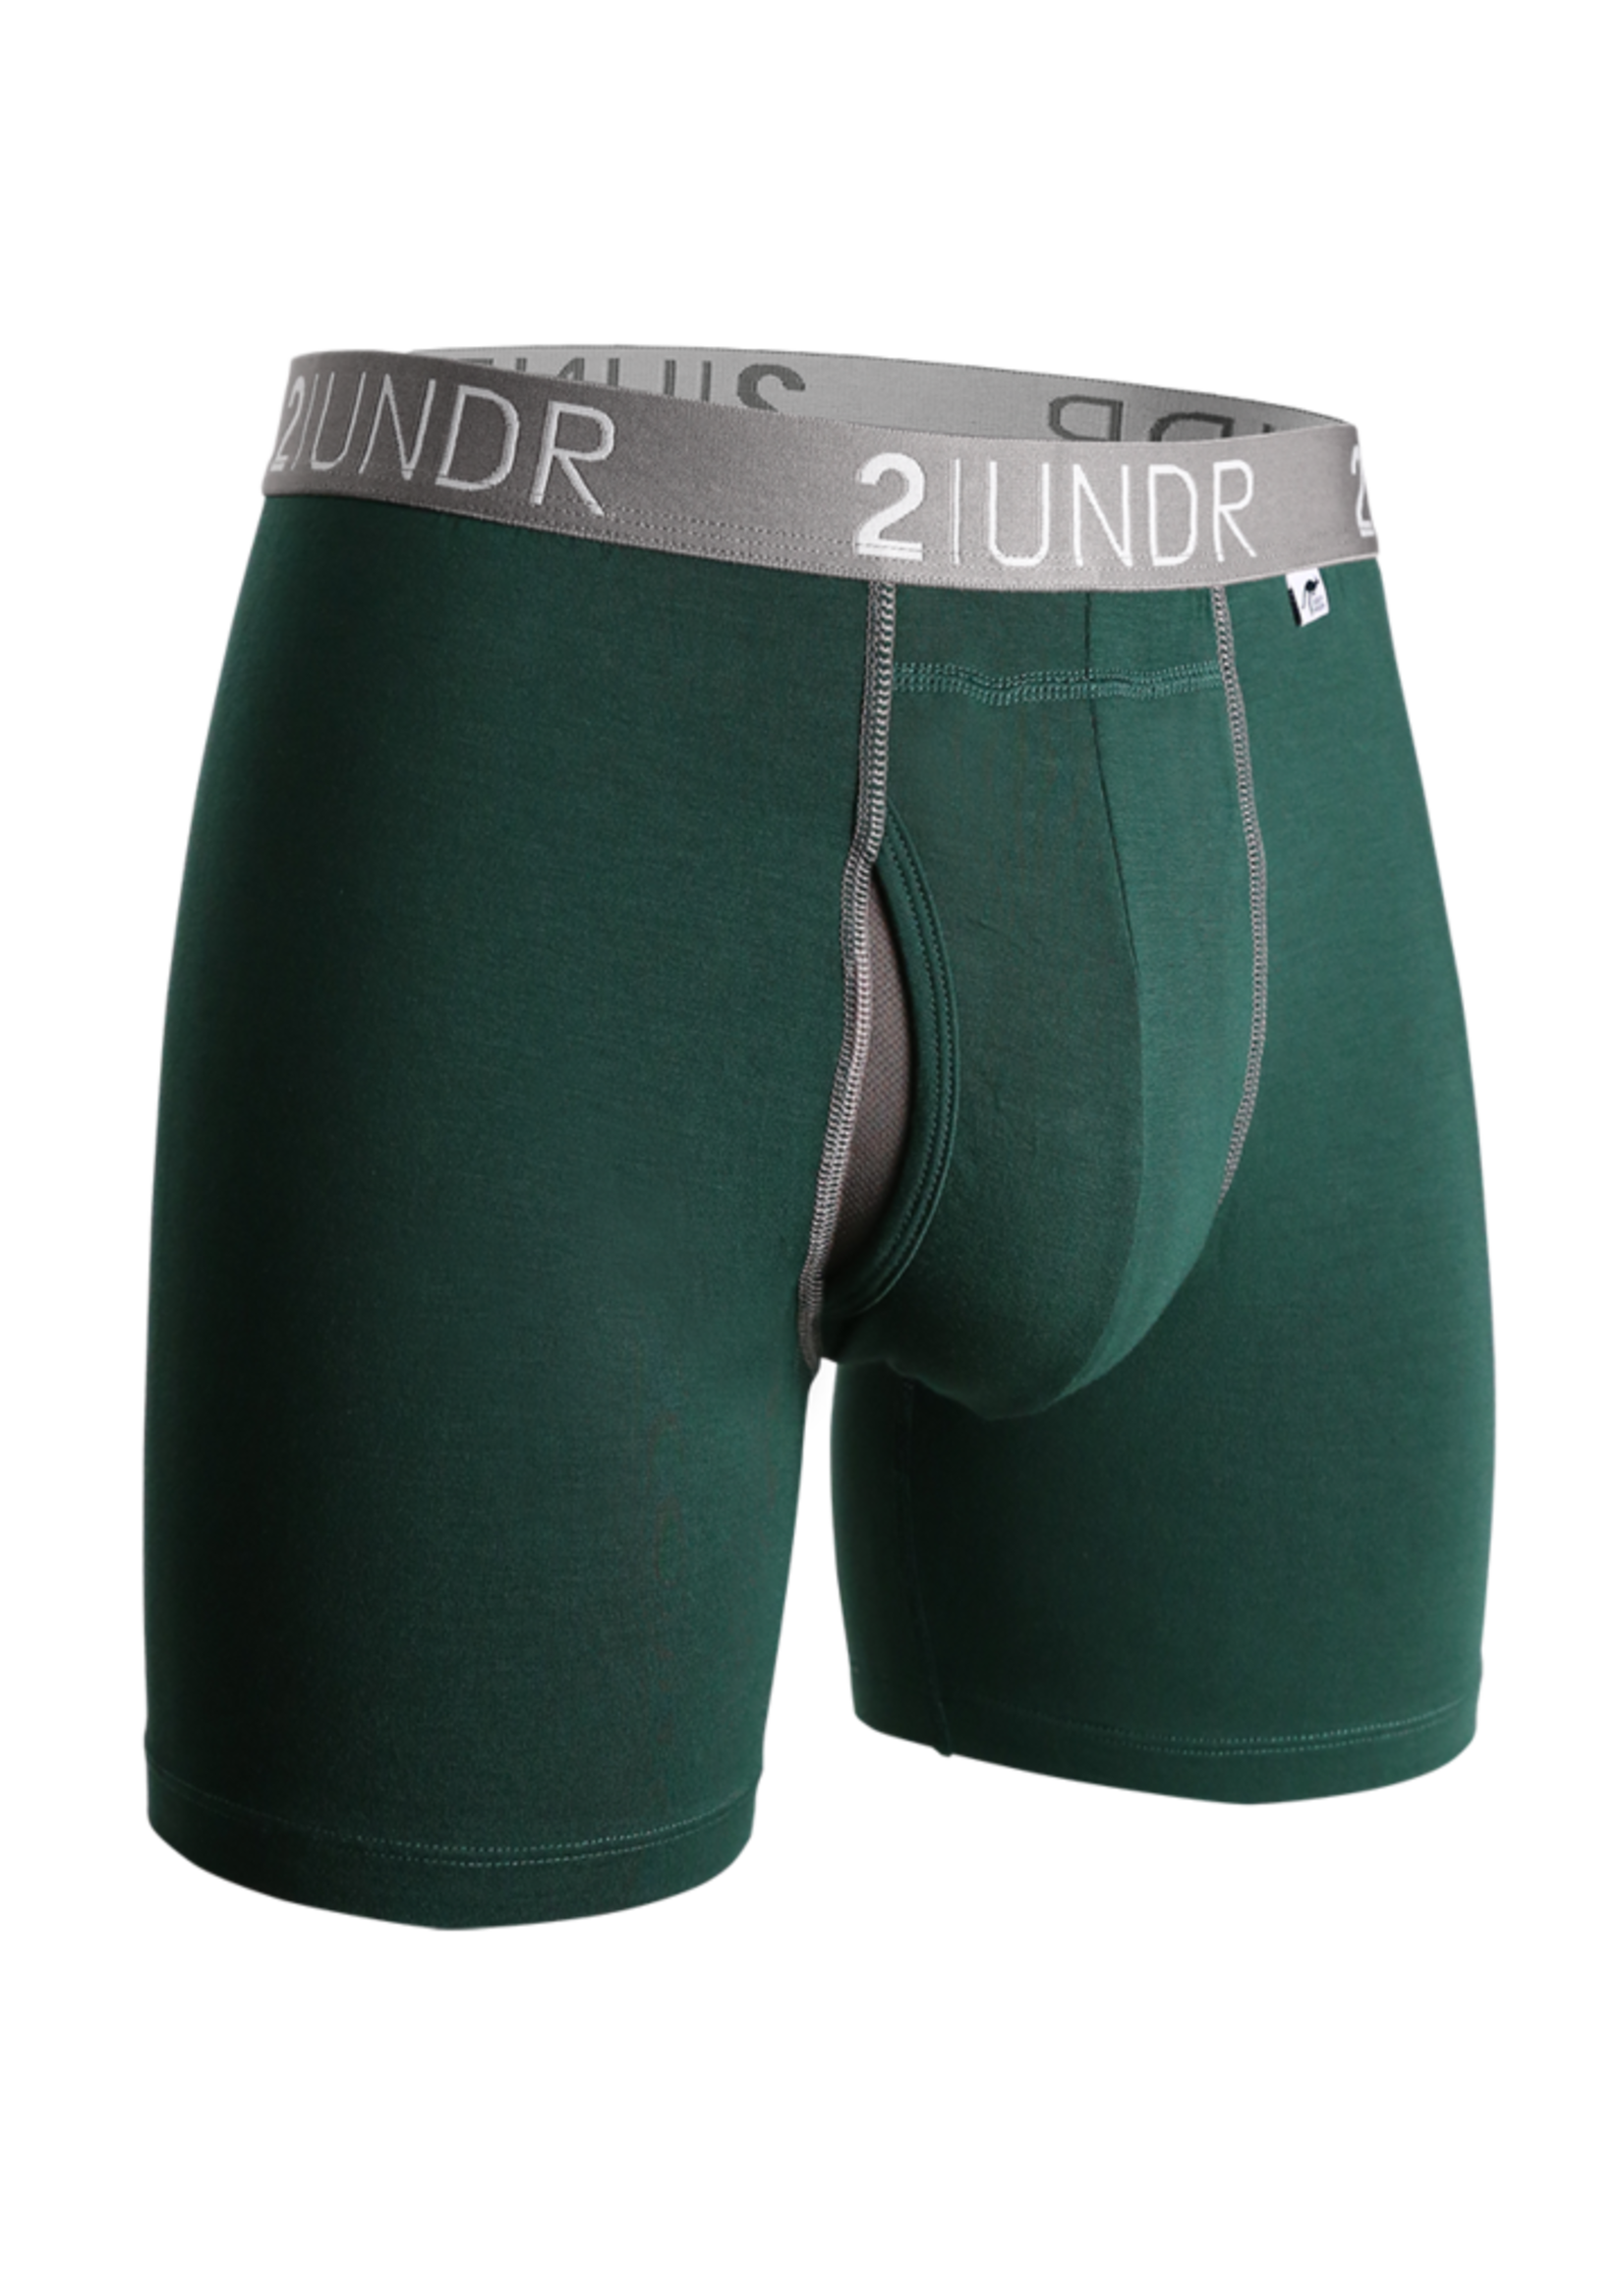 2UNDR 2UNDR Solid Swing Shift  Boxer Brief